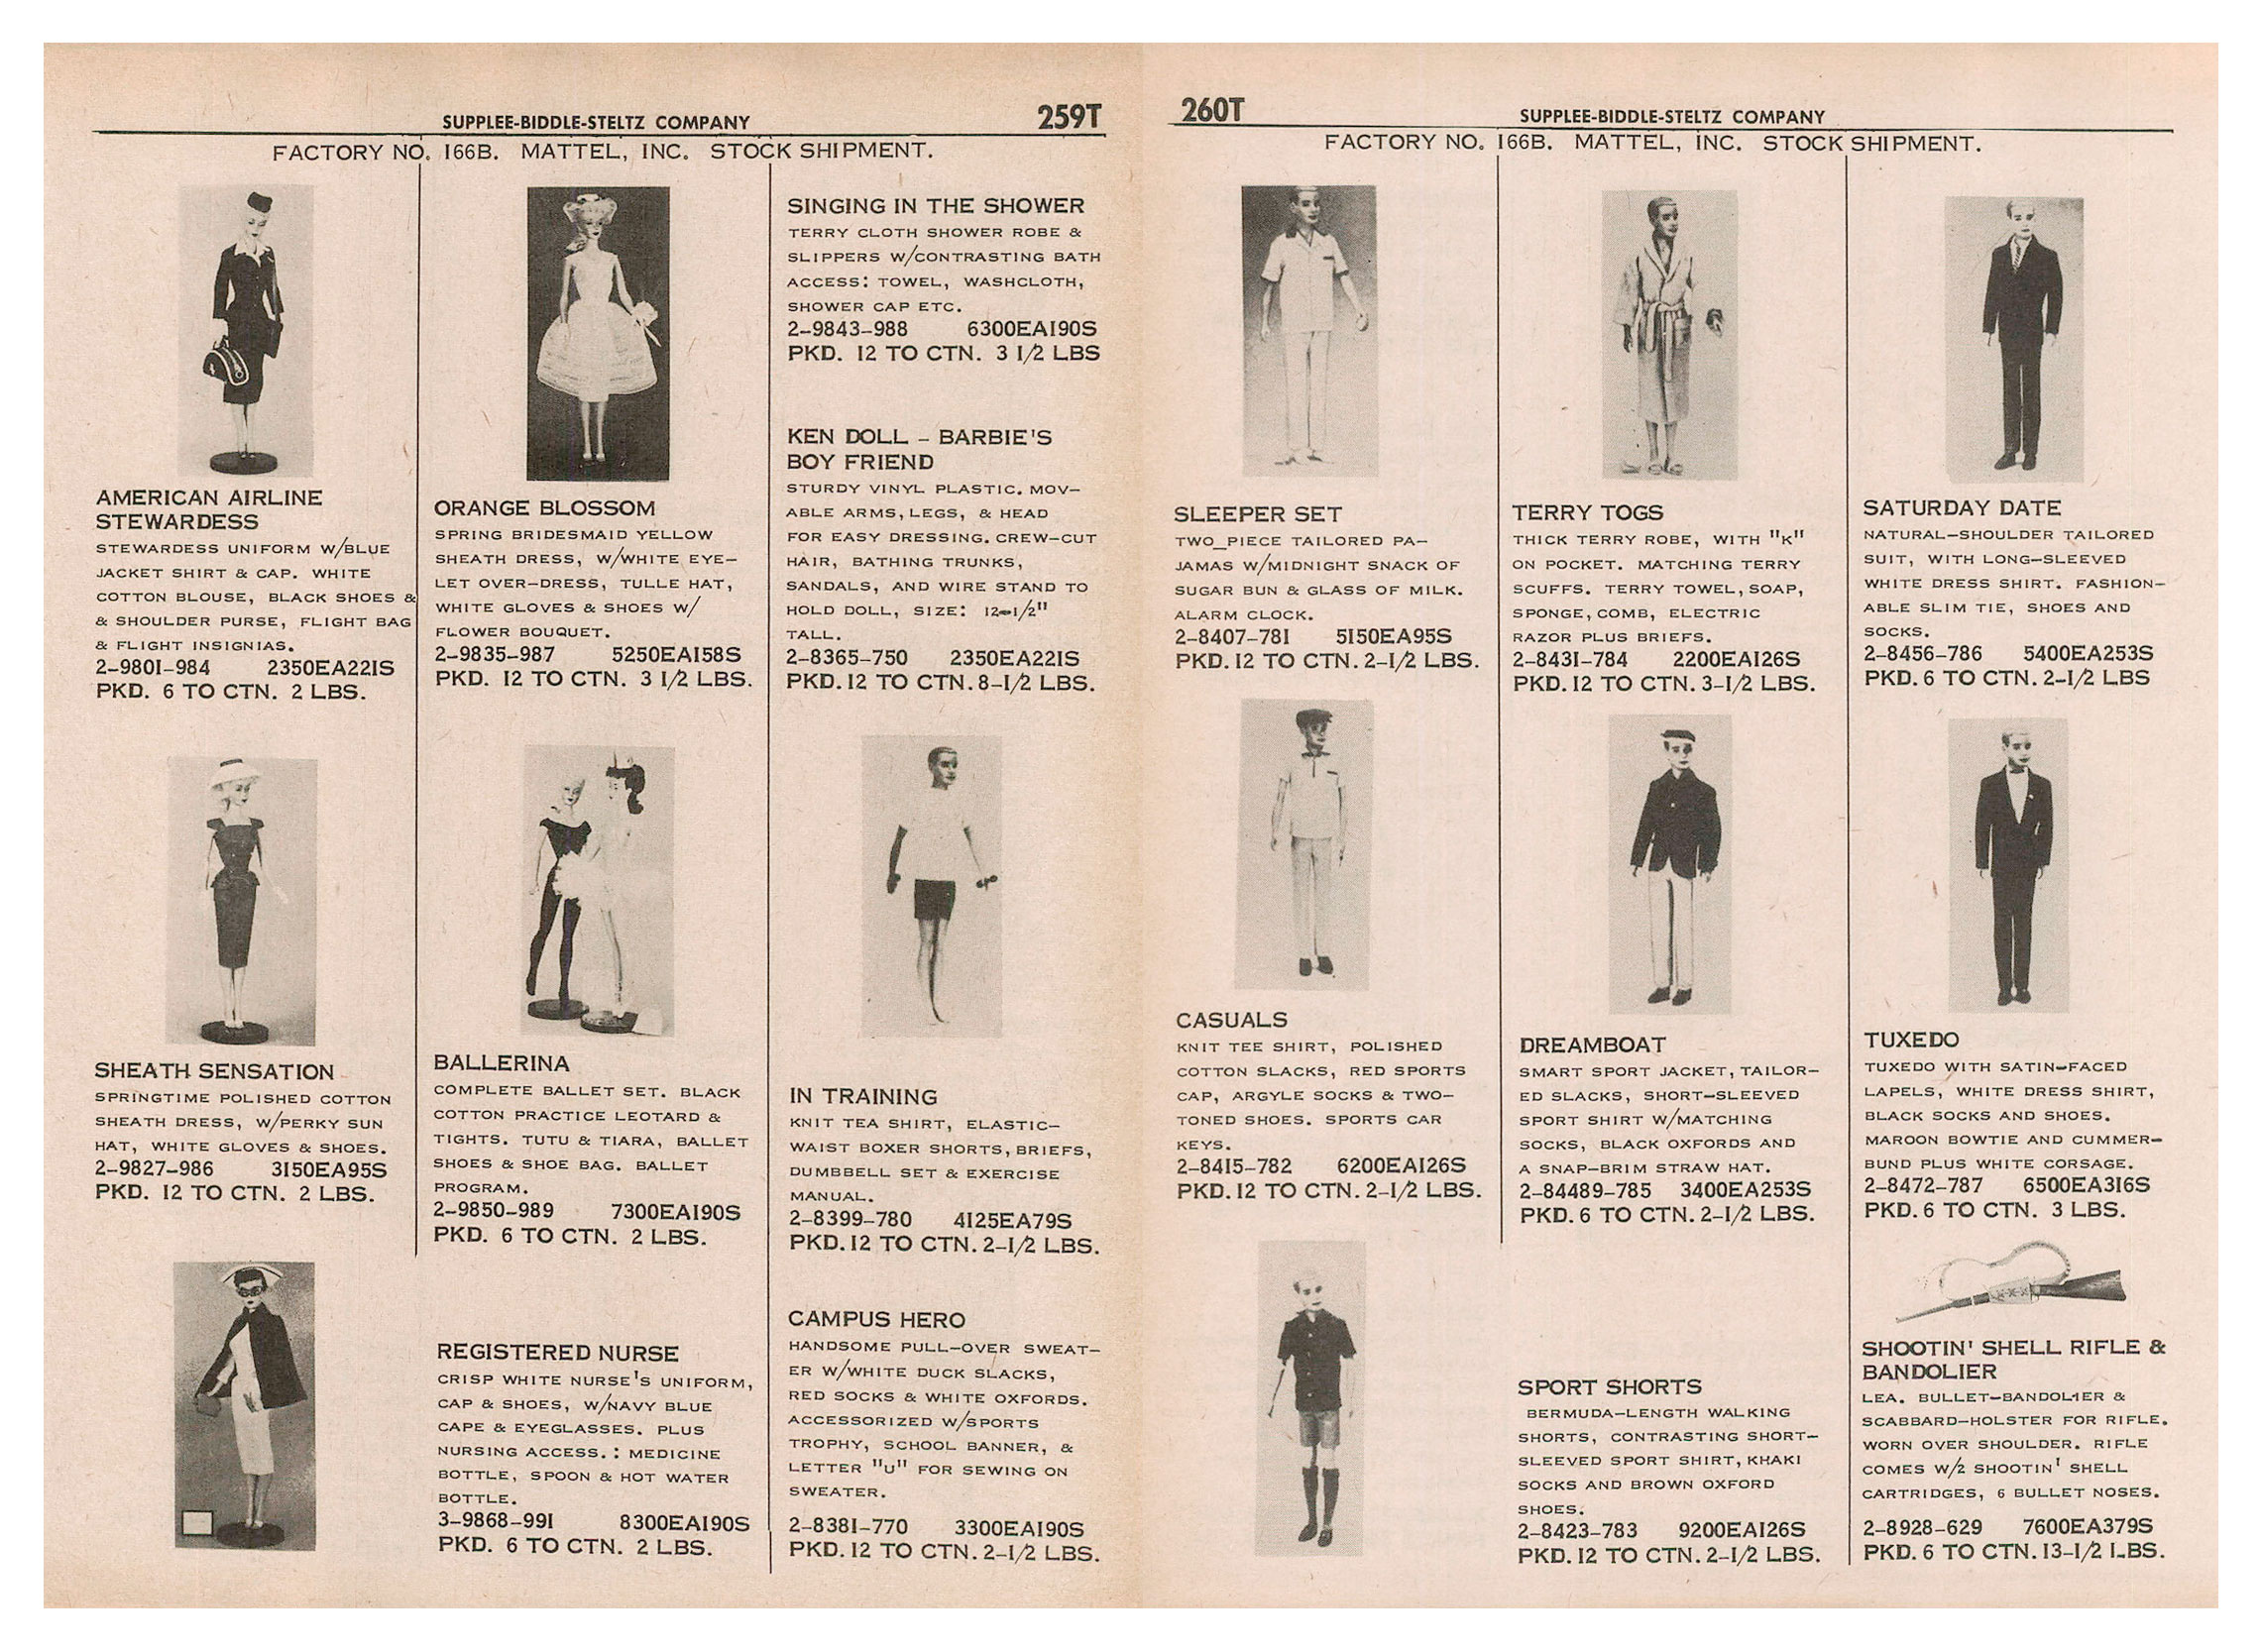 From 1961 Supplee-Biddle-Steltz Company catalogue